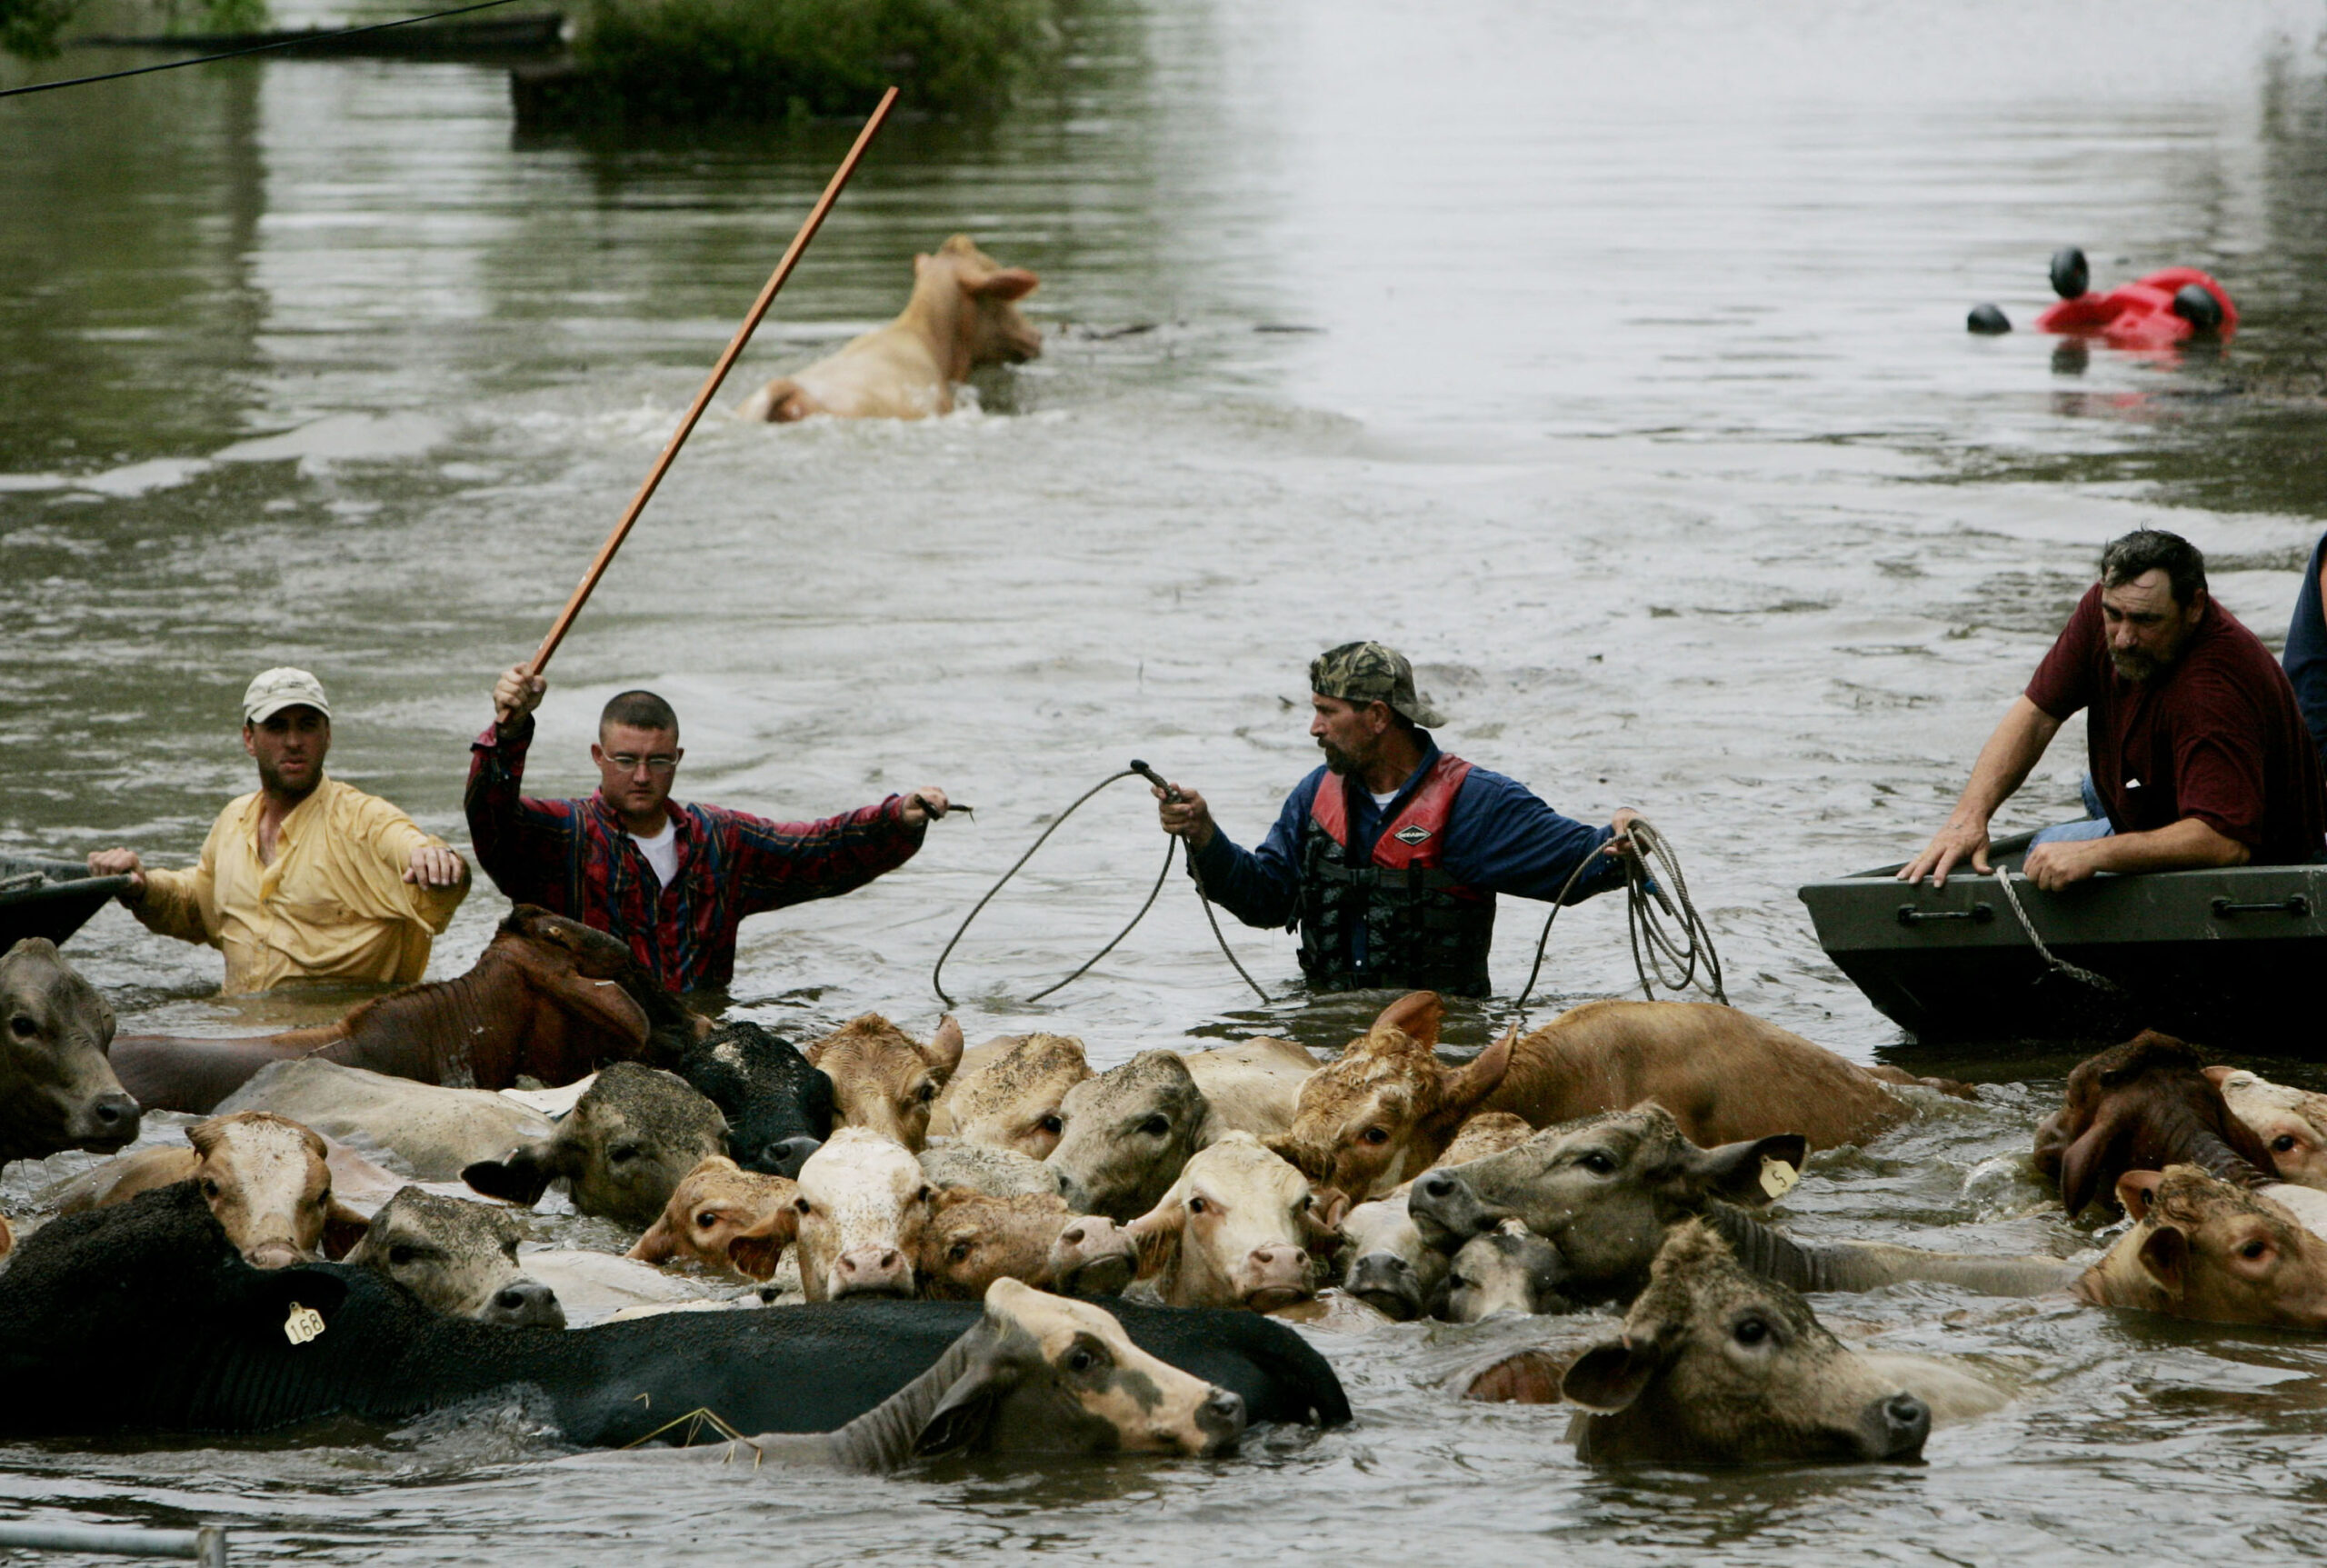 Wranglers guide a herd of stranded cows to higher ground as flood waters rise, due to a levy break Sept. 24, 2005 in Chauvin, Louisiana. Hurricane Rita caused massive damage as it moved across western Louisiana. Credit: Sandy Huffaker/Getty Images